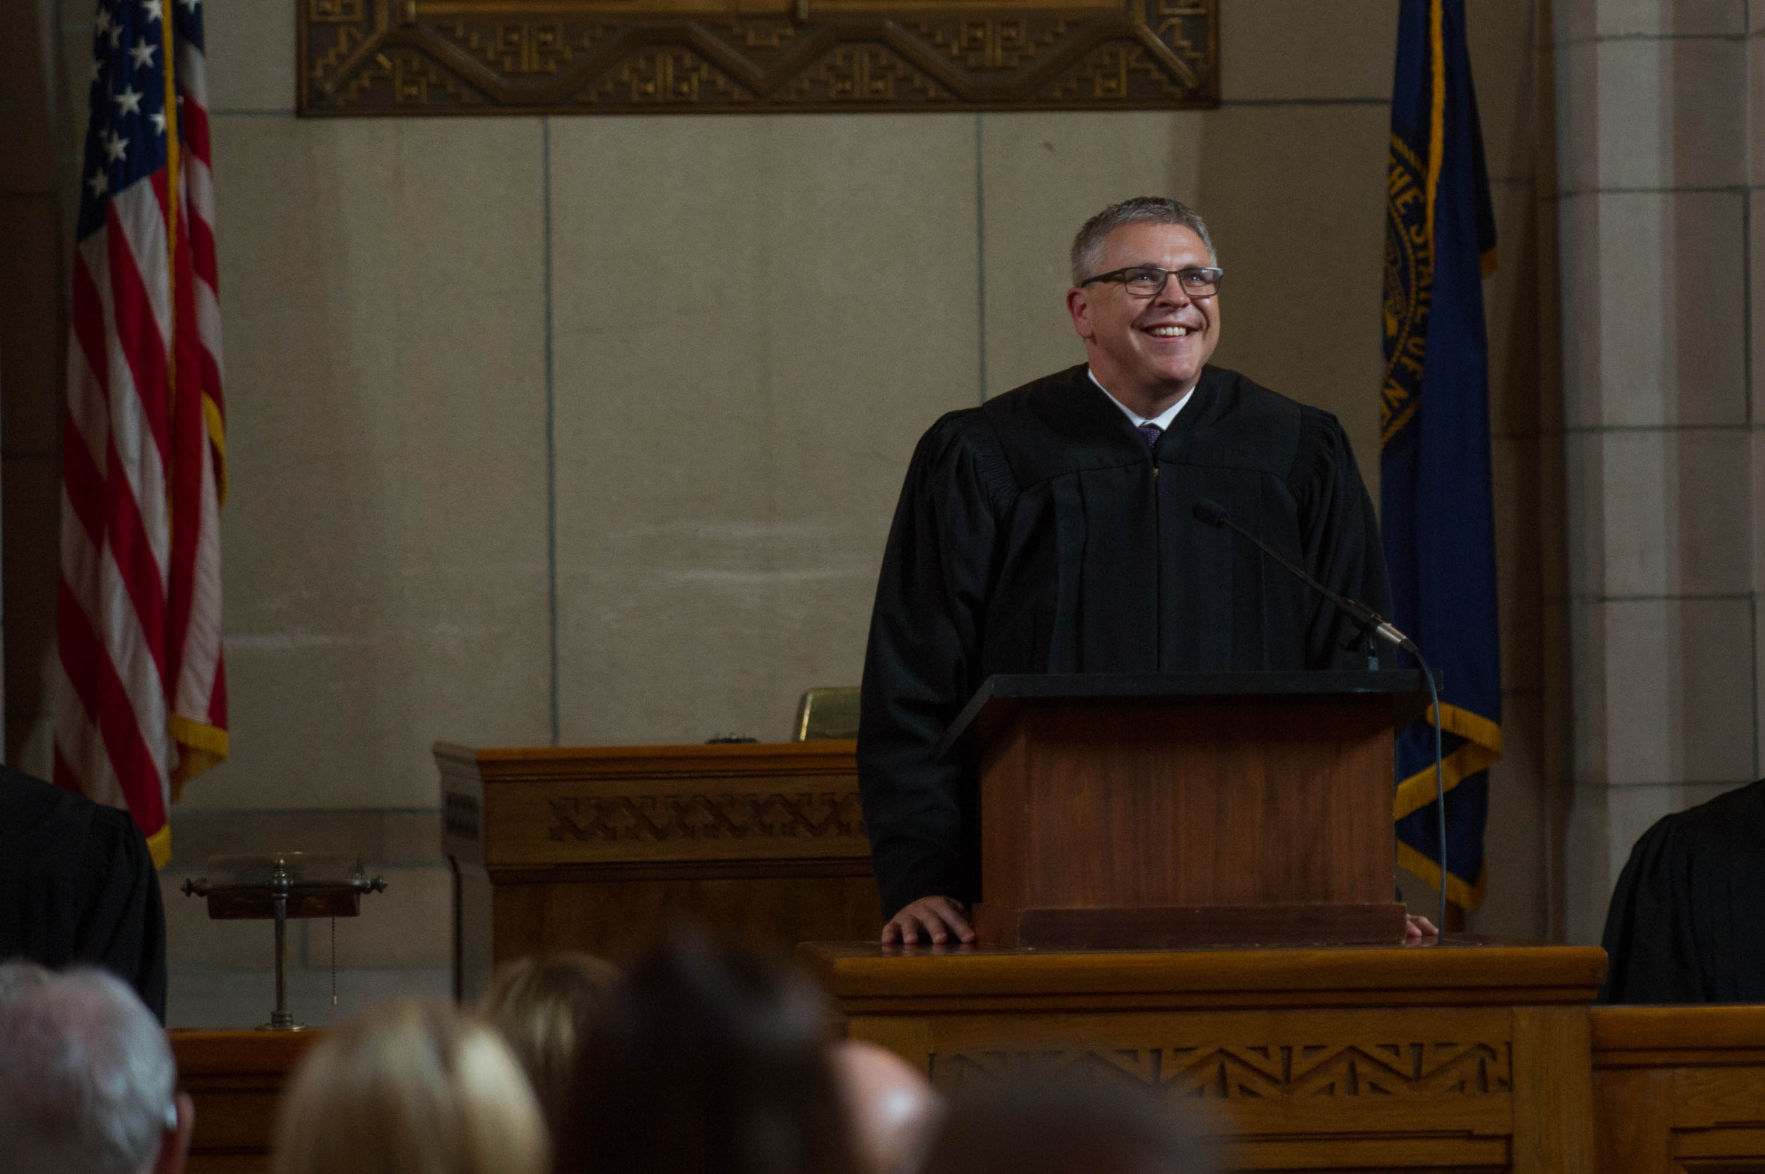 Newest Nebraska Supreme Court Justice Freudenberg enrobed by family | Journal Star